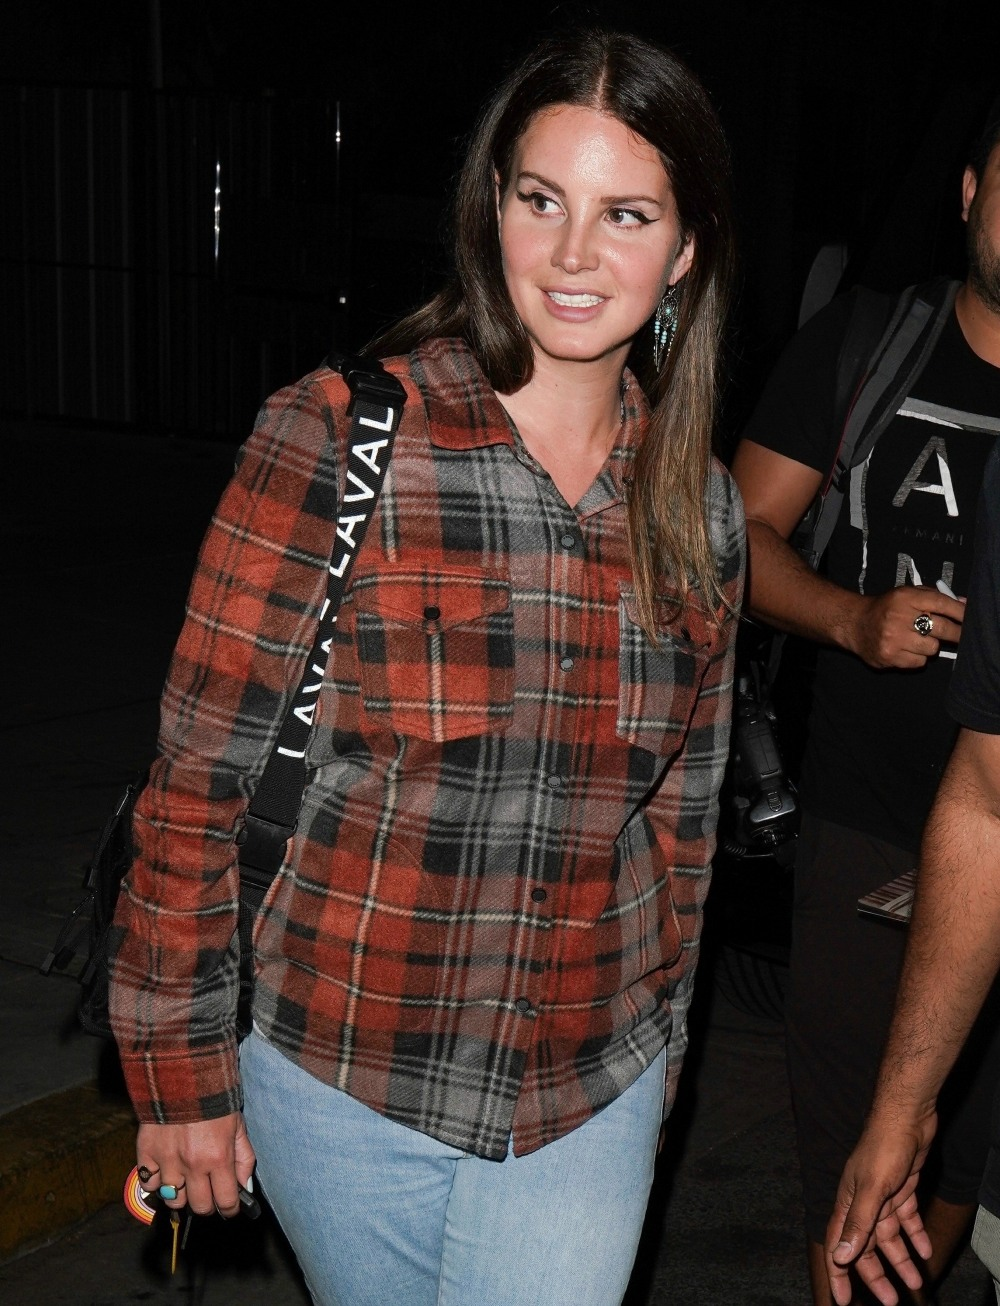 Lana del Rey keeps it casual while leaving Wednesday night Church service in Beverly Hills